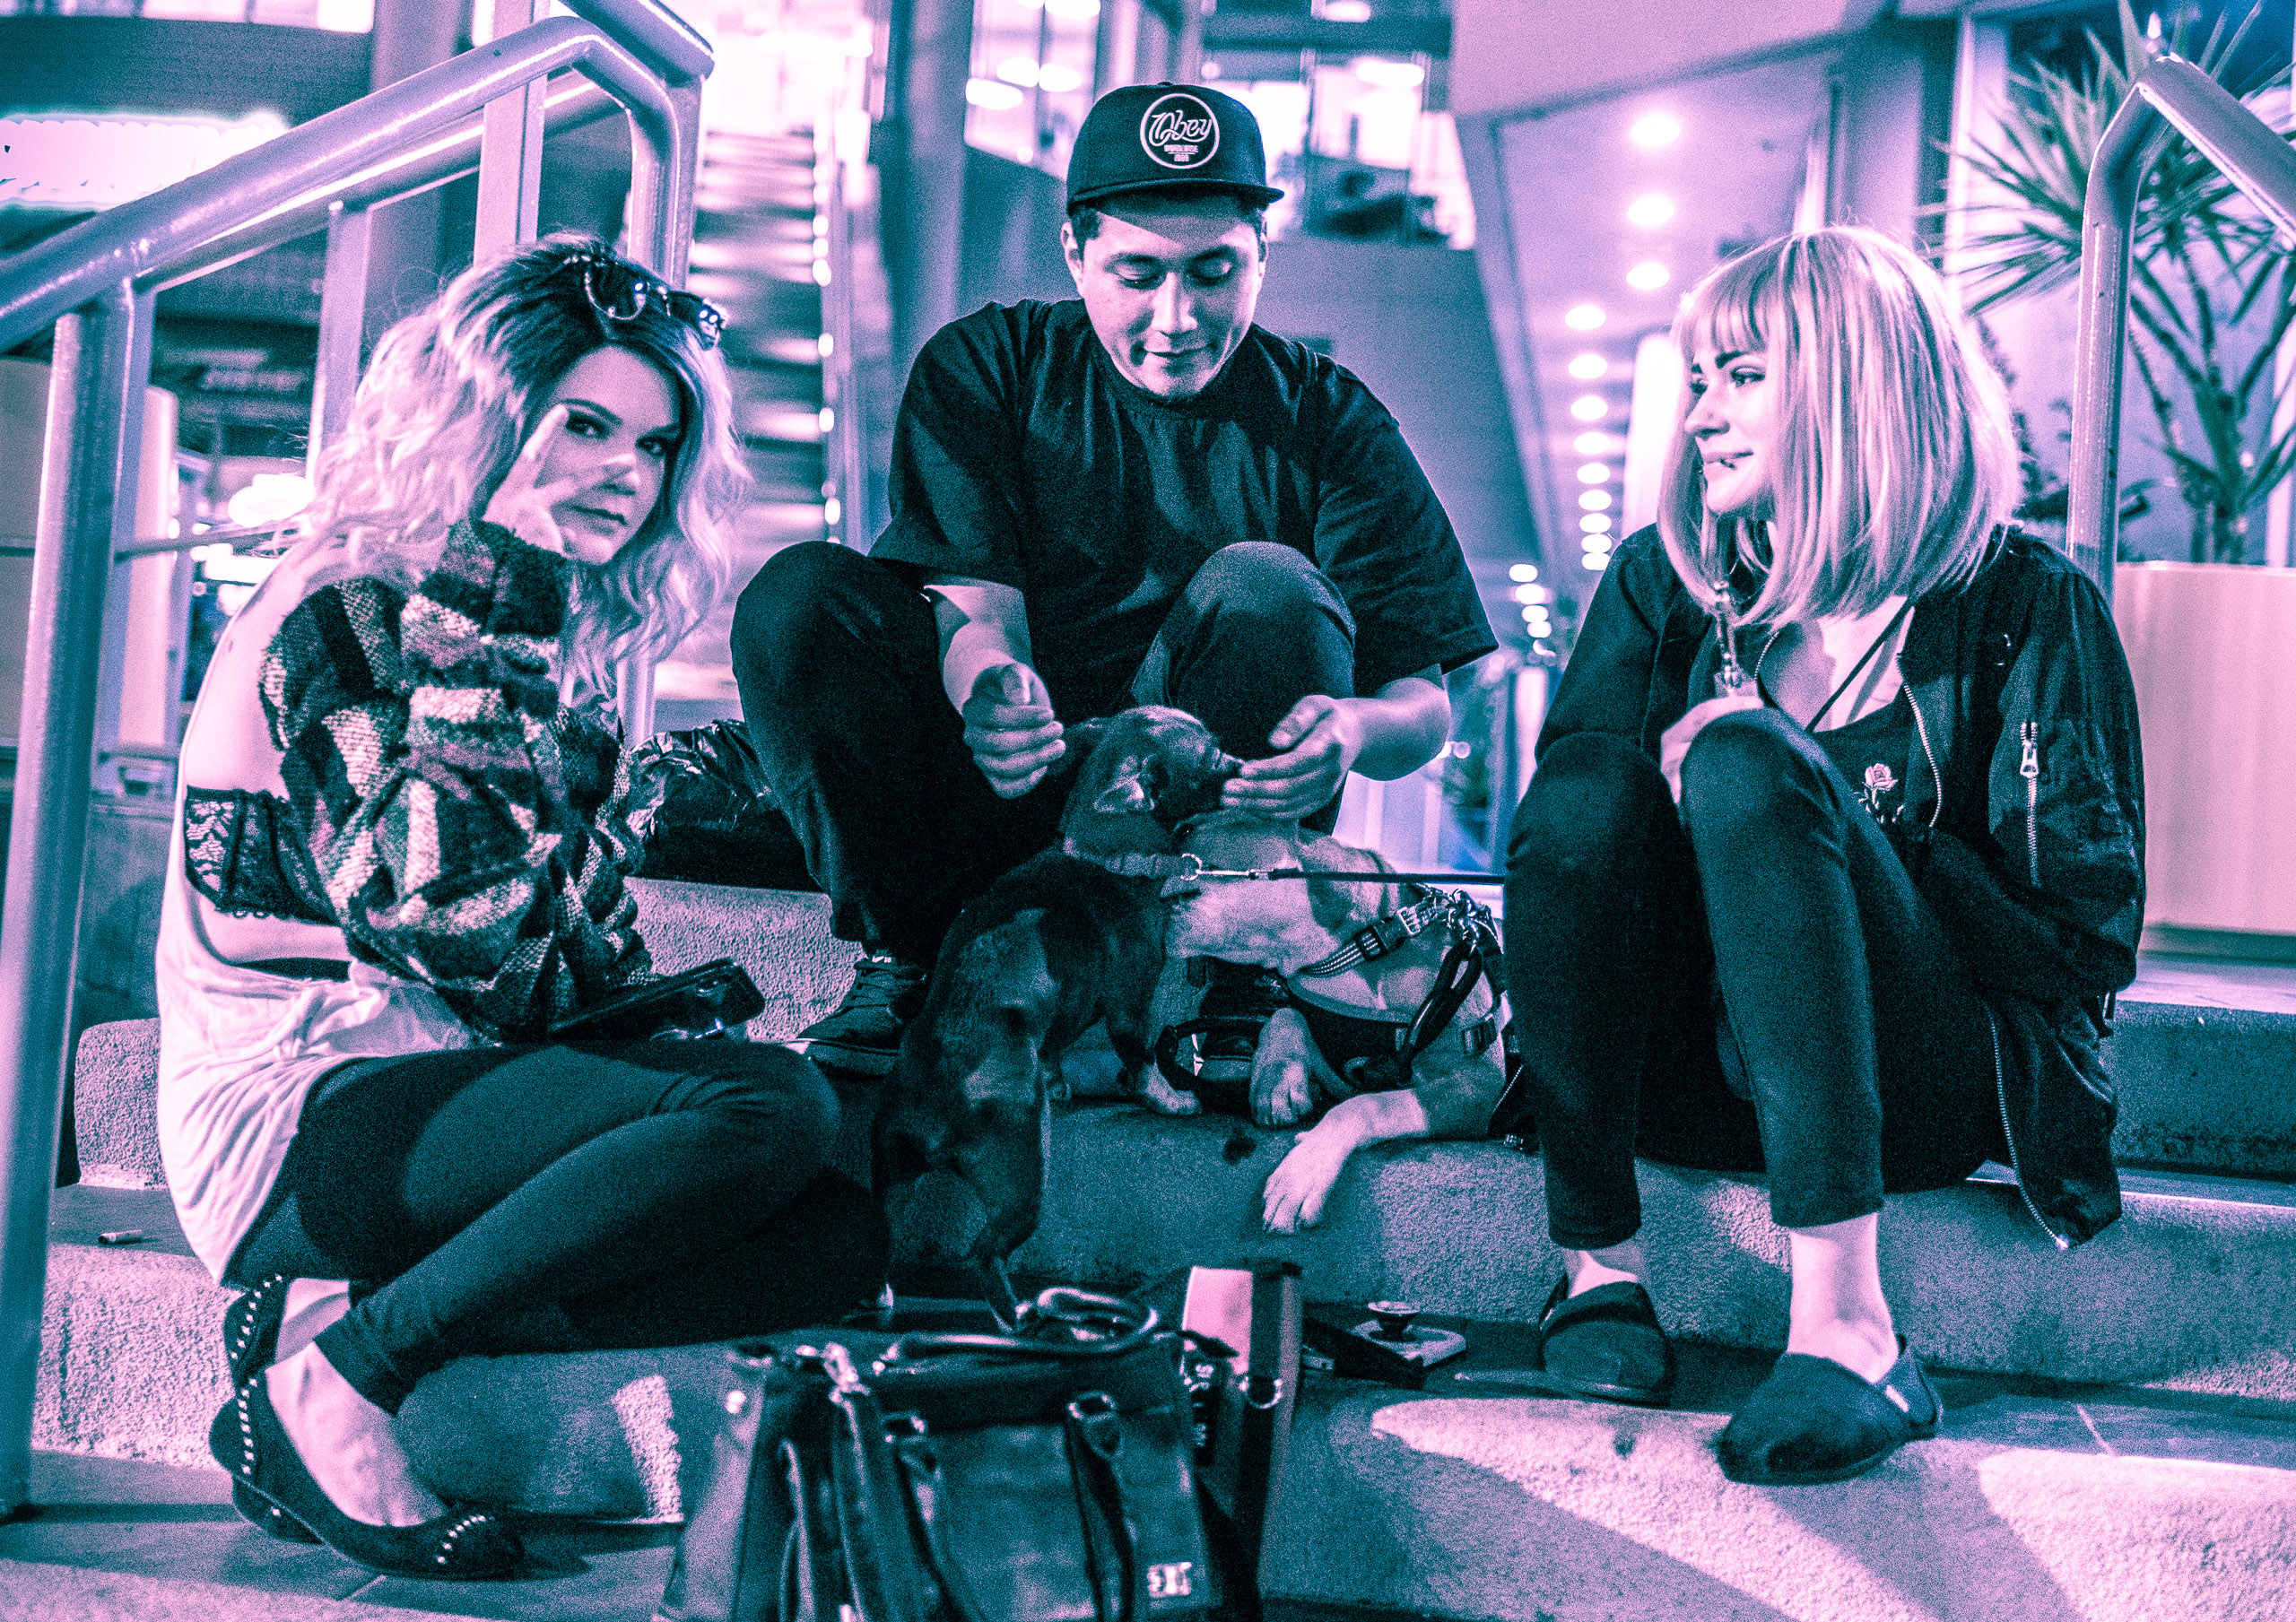 Two girls, a guy, and two dogs sit on a staircase on Hollywood Blvd. One girl looks at the other girl, while she looks at the camera, and the guy plays with the dogs.